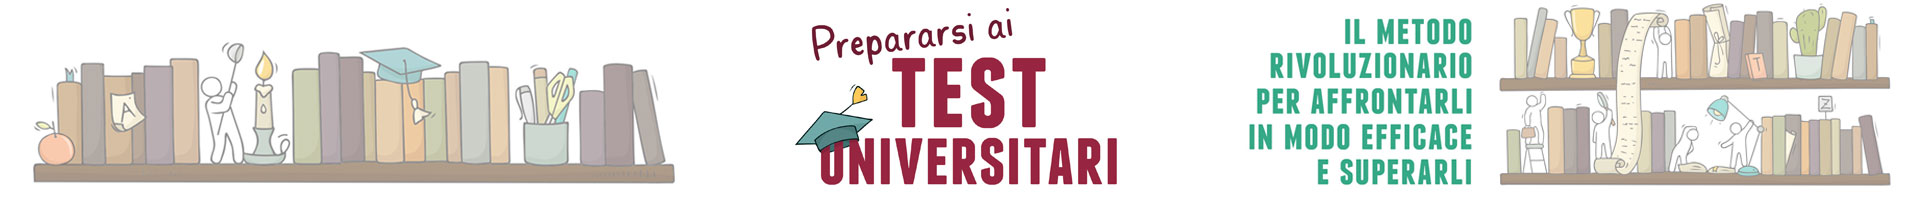 Libro Prepararsi ai test universitari